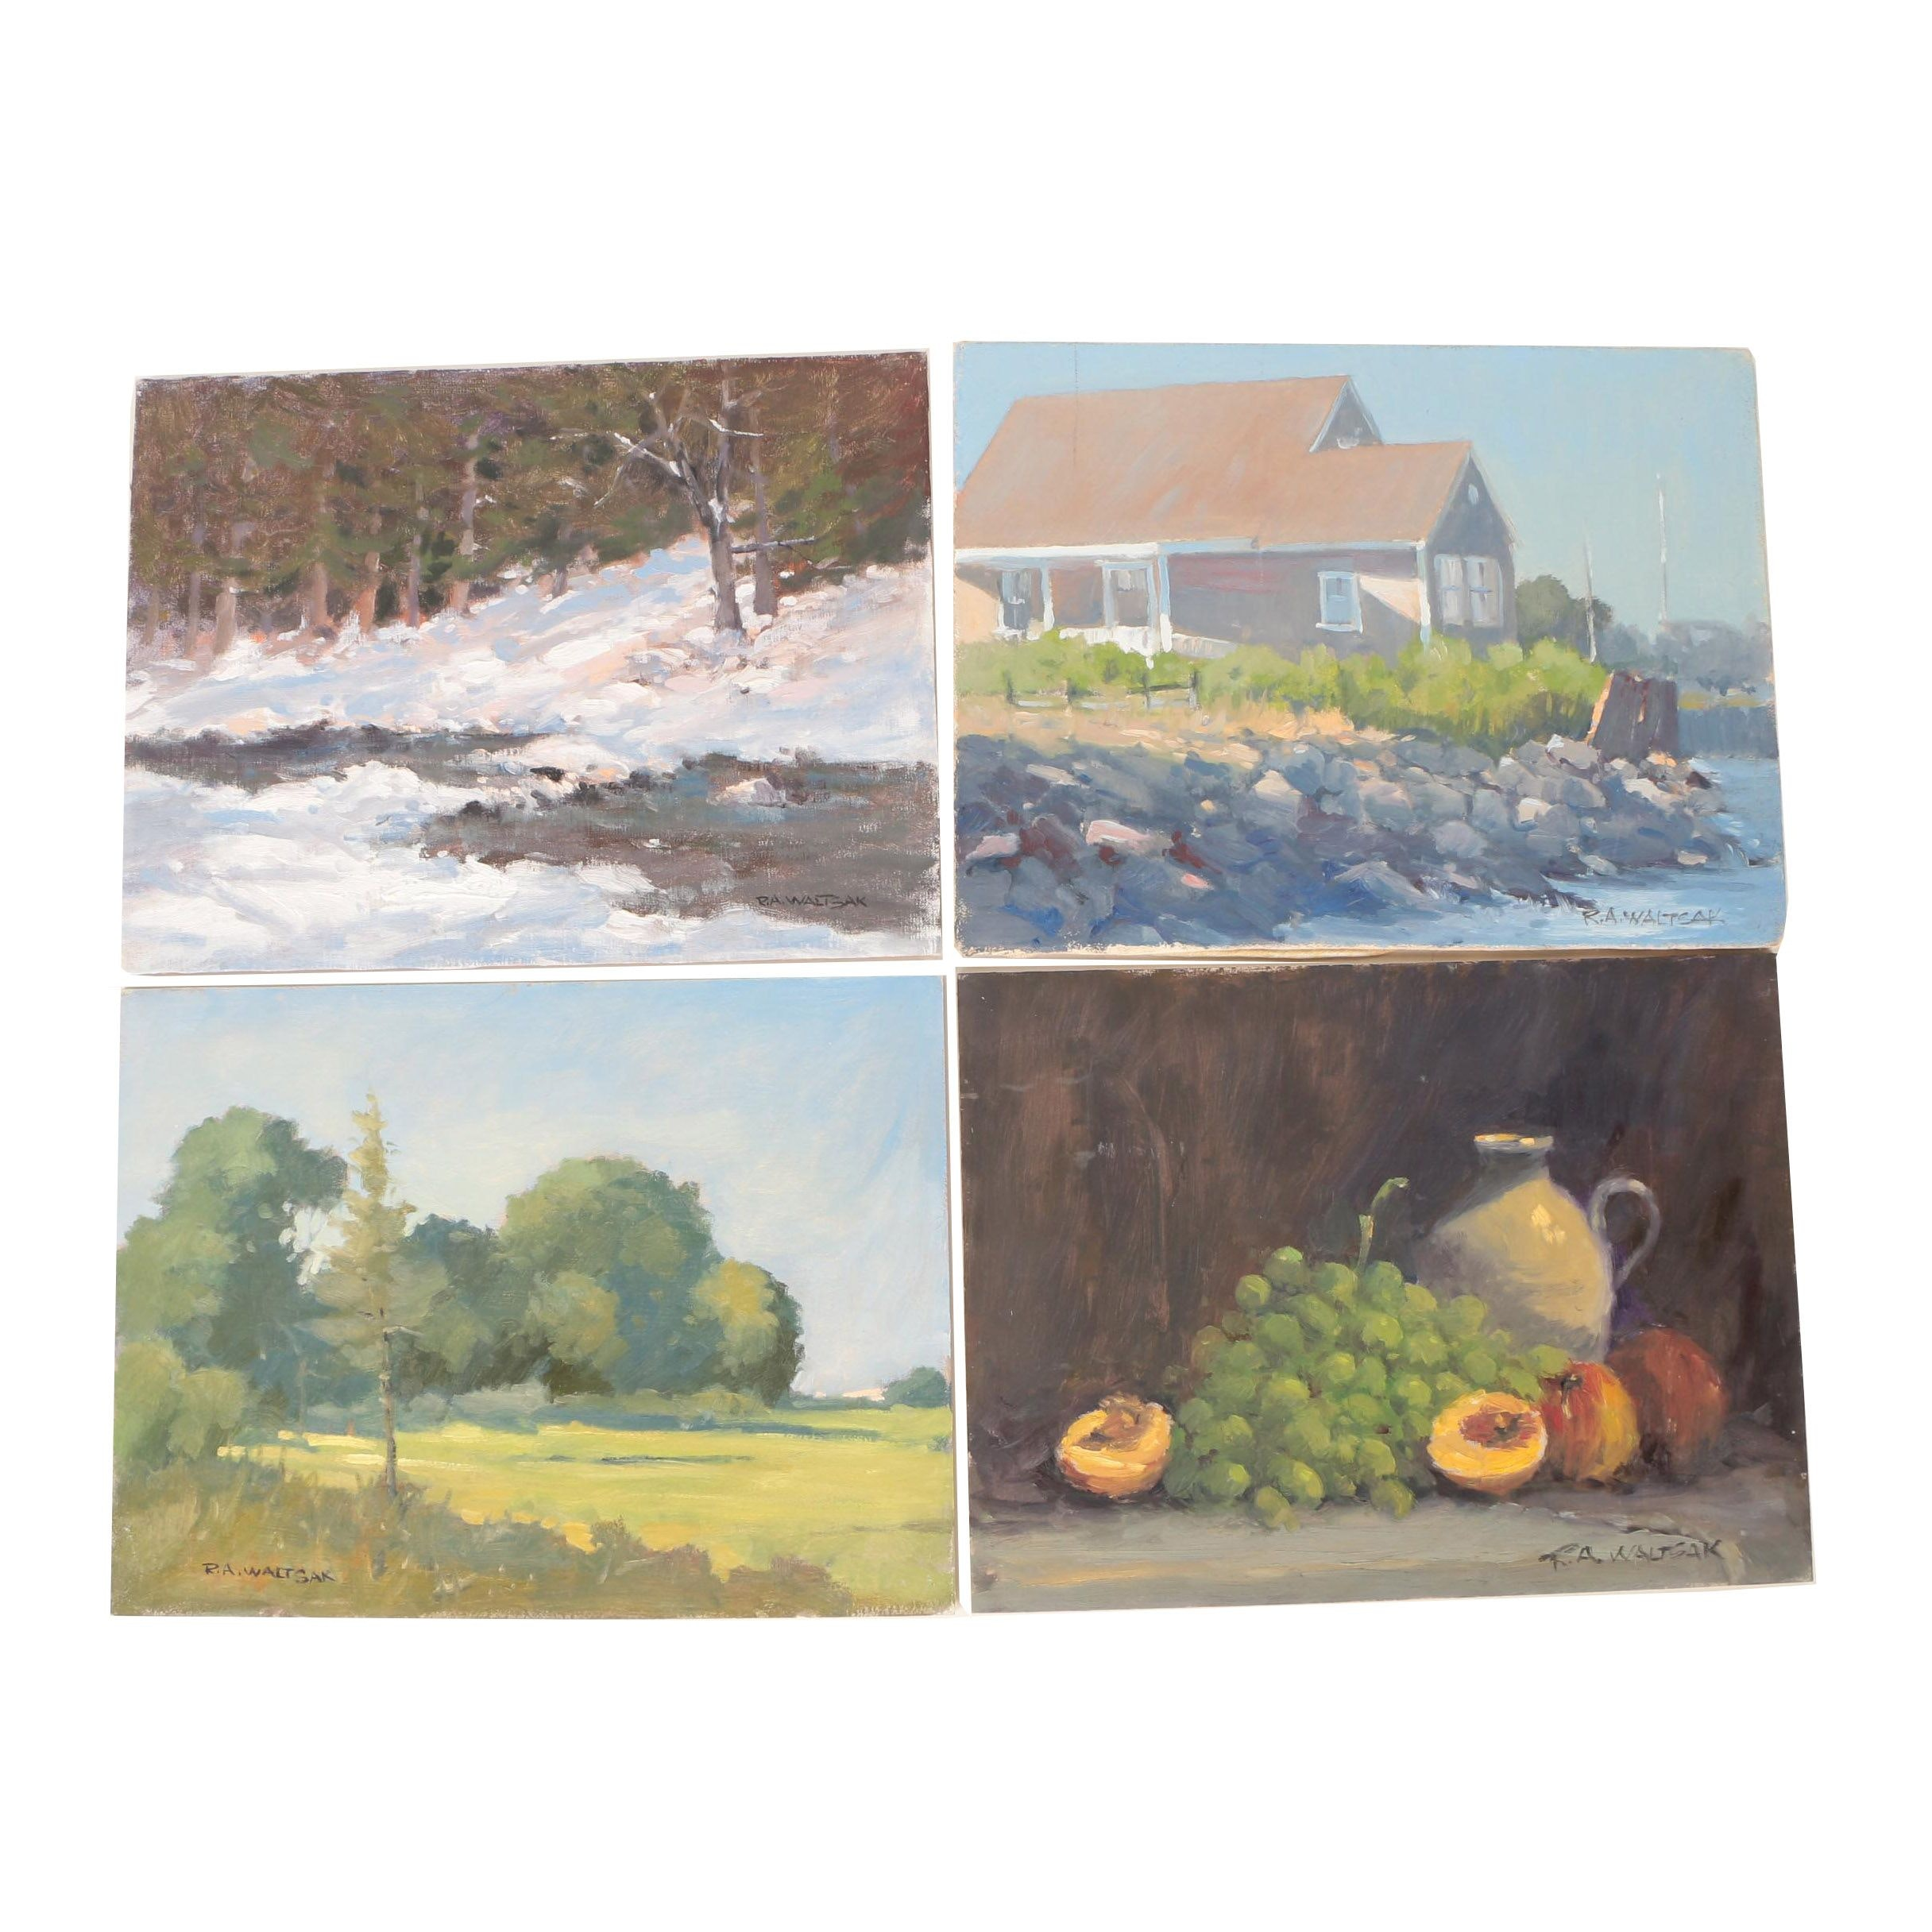 Robert A. Waltsak Still Life and Landscape Oil Paintings